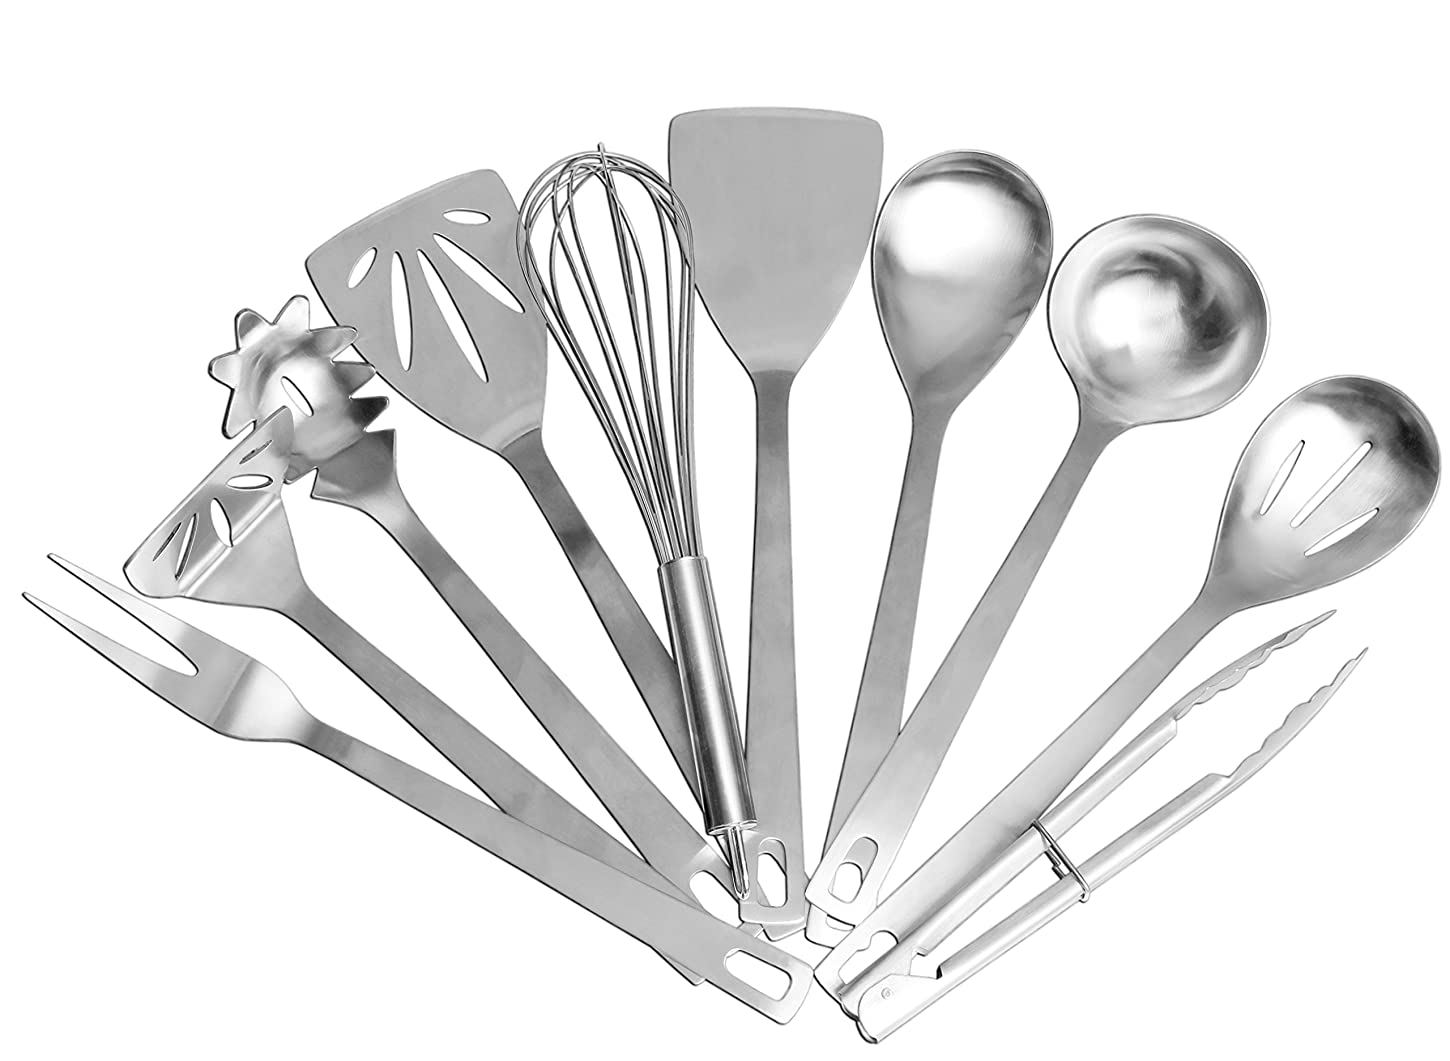 Darware 10-Piece Stainless Steel Cooking Utensils Set